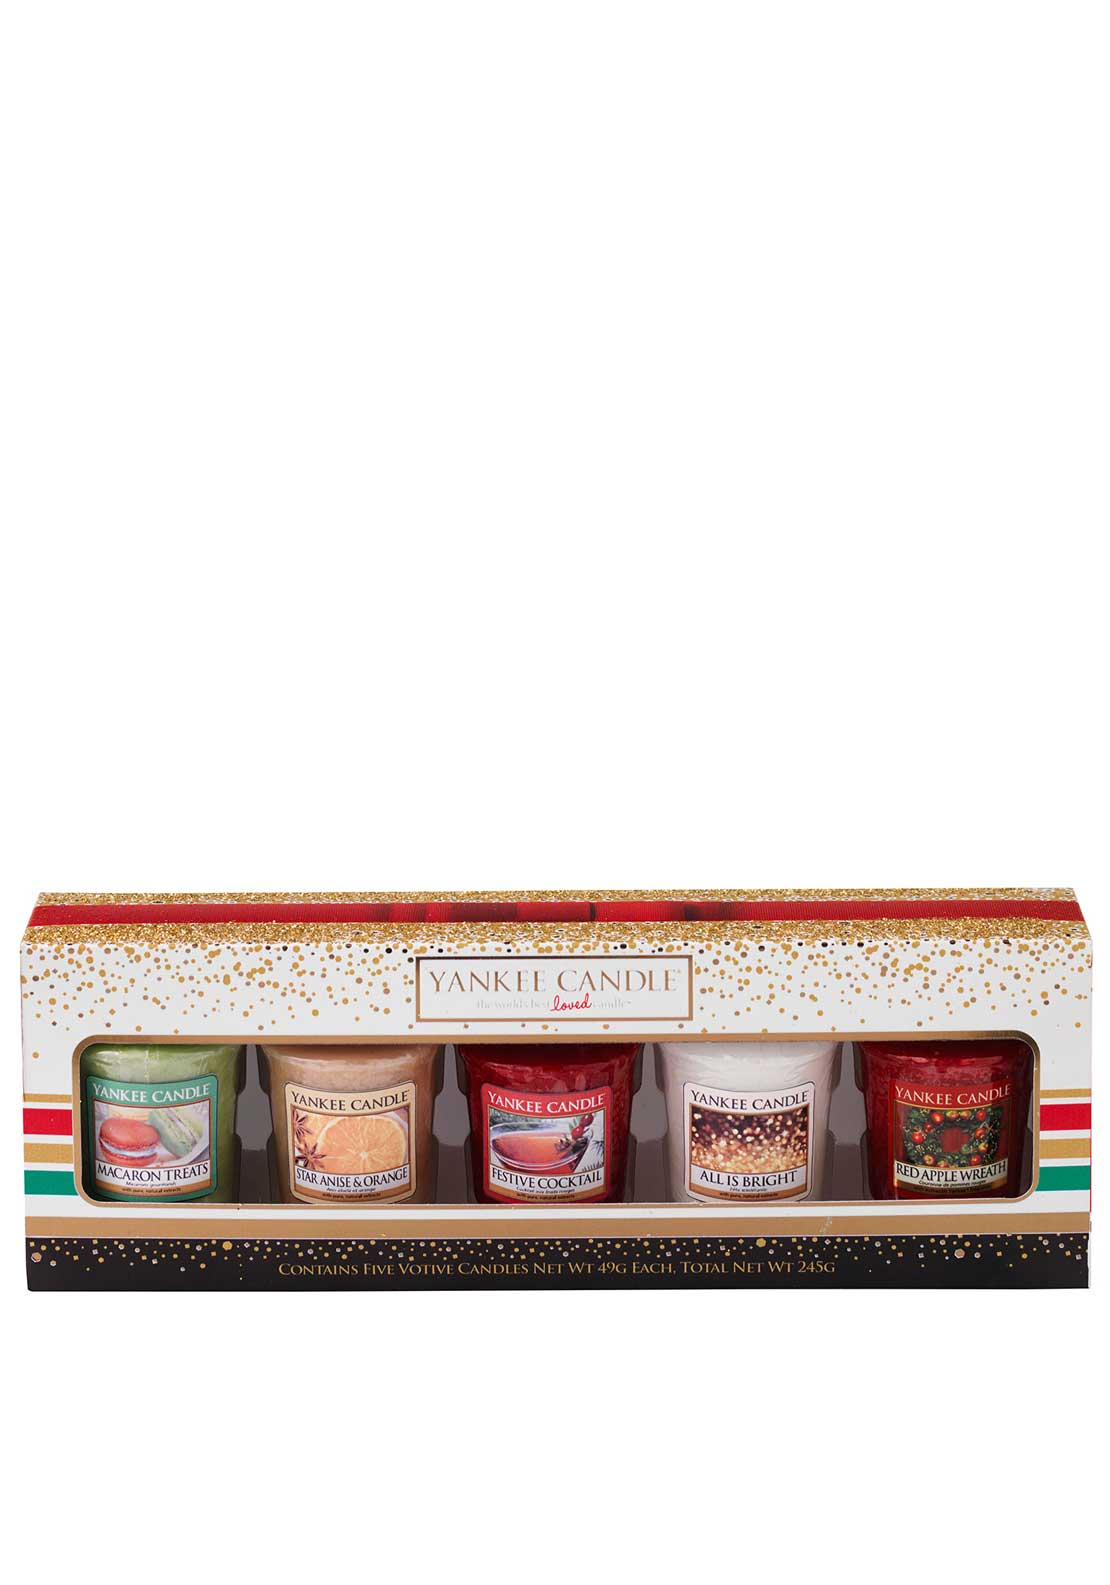 Yankee Candle Holiday Party 5 Votive Candle Set